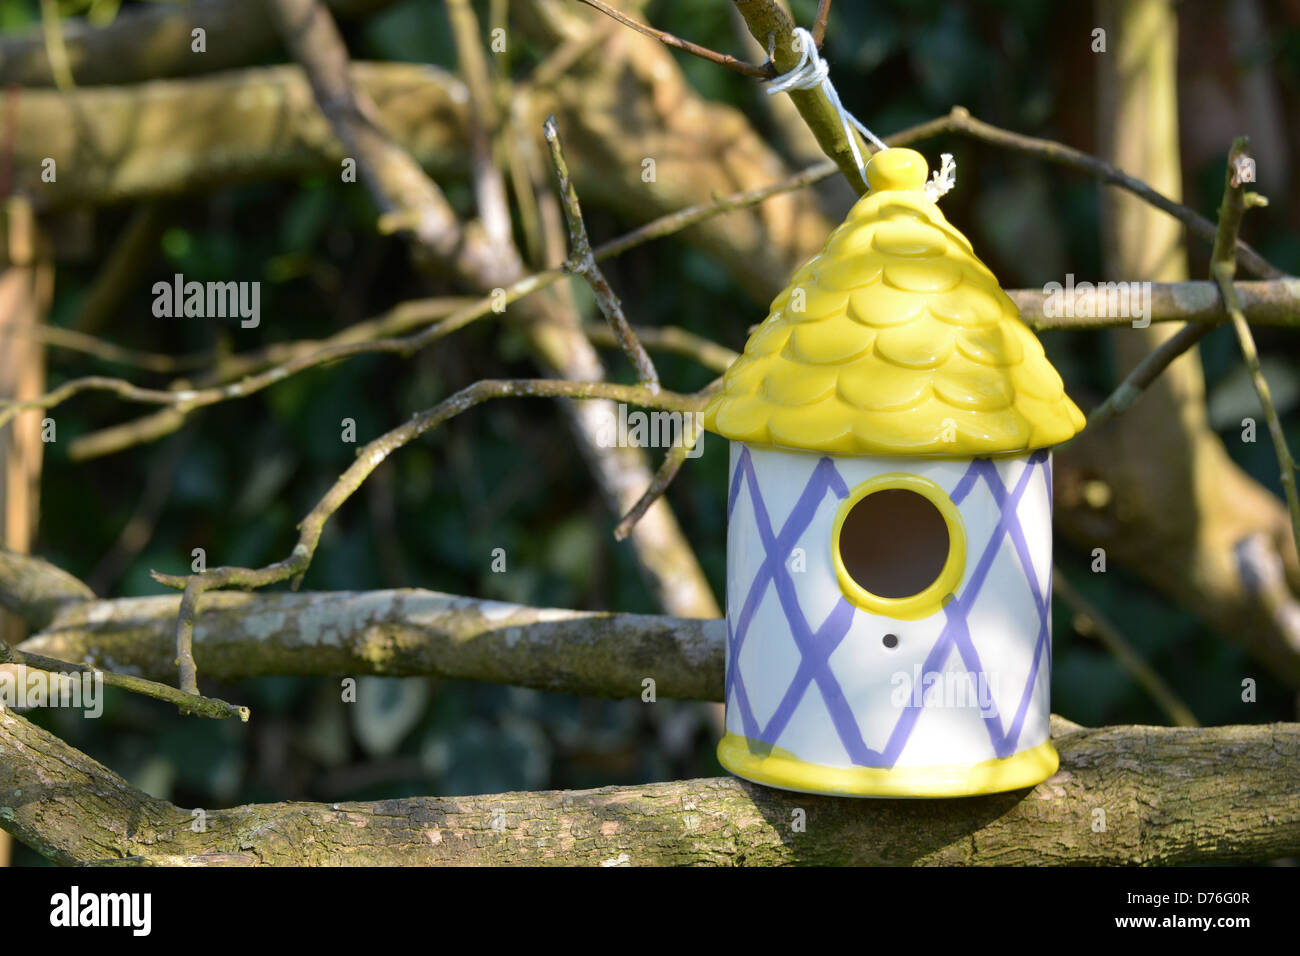 A colourful birdhouse on a tree branch - Stock Image